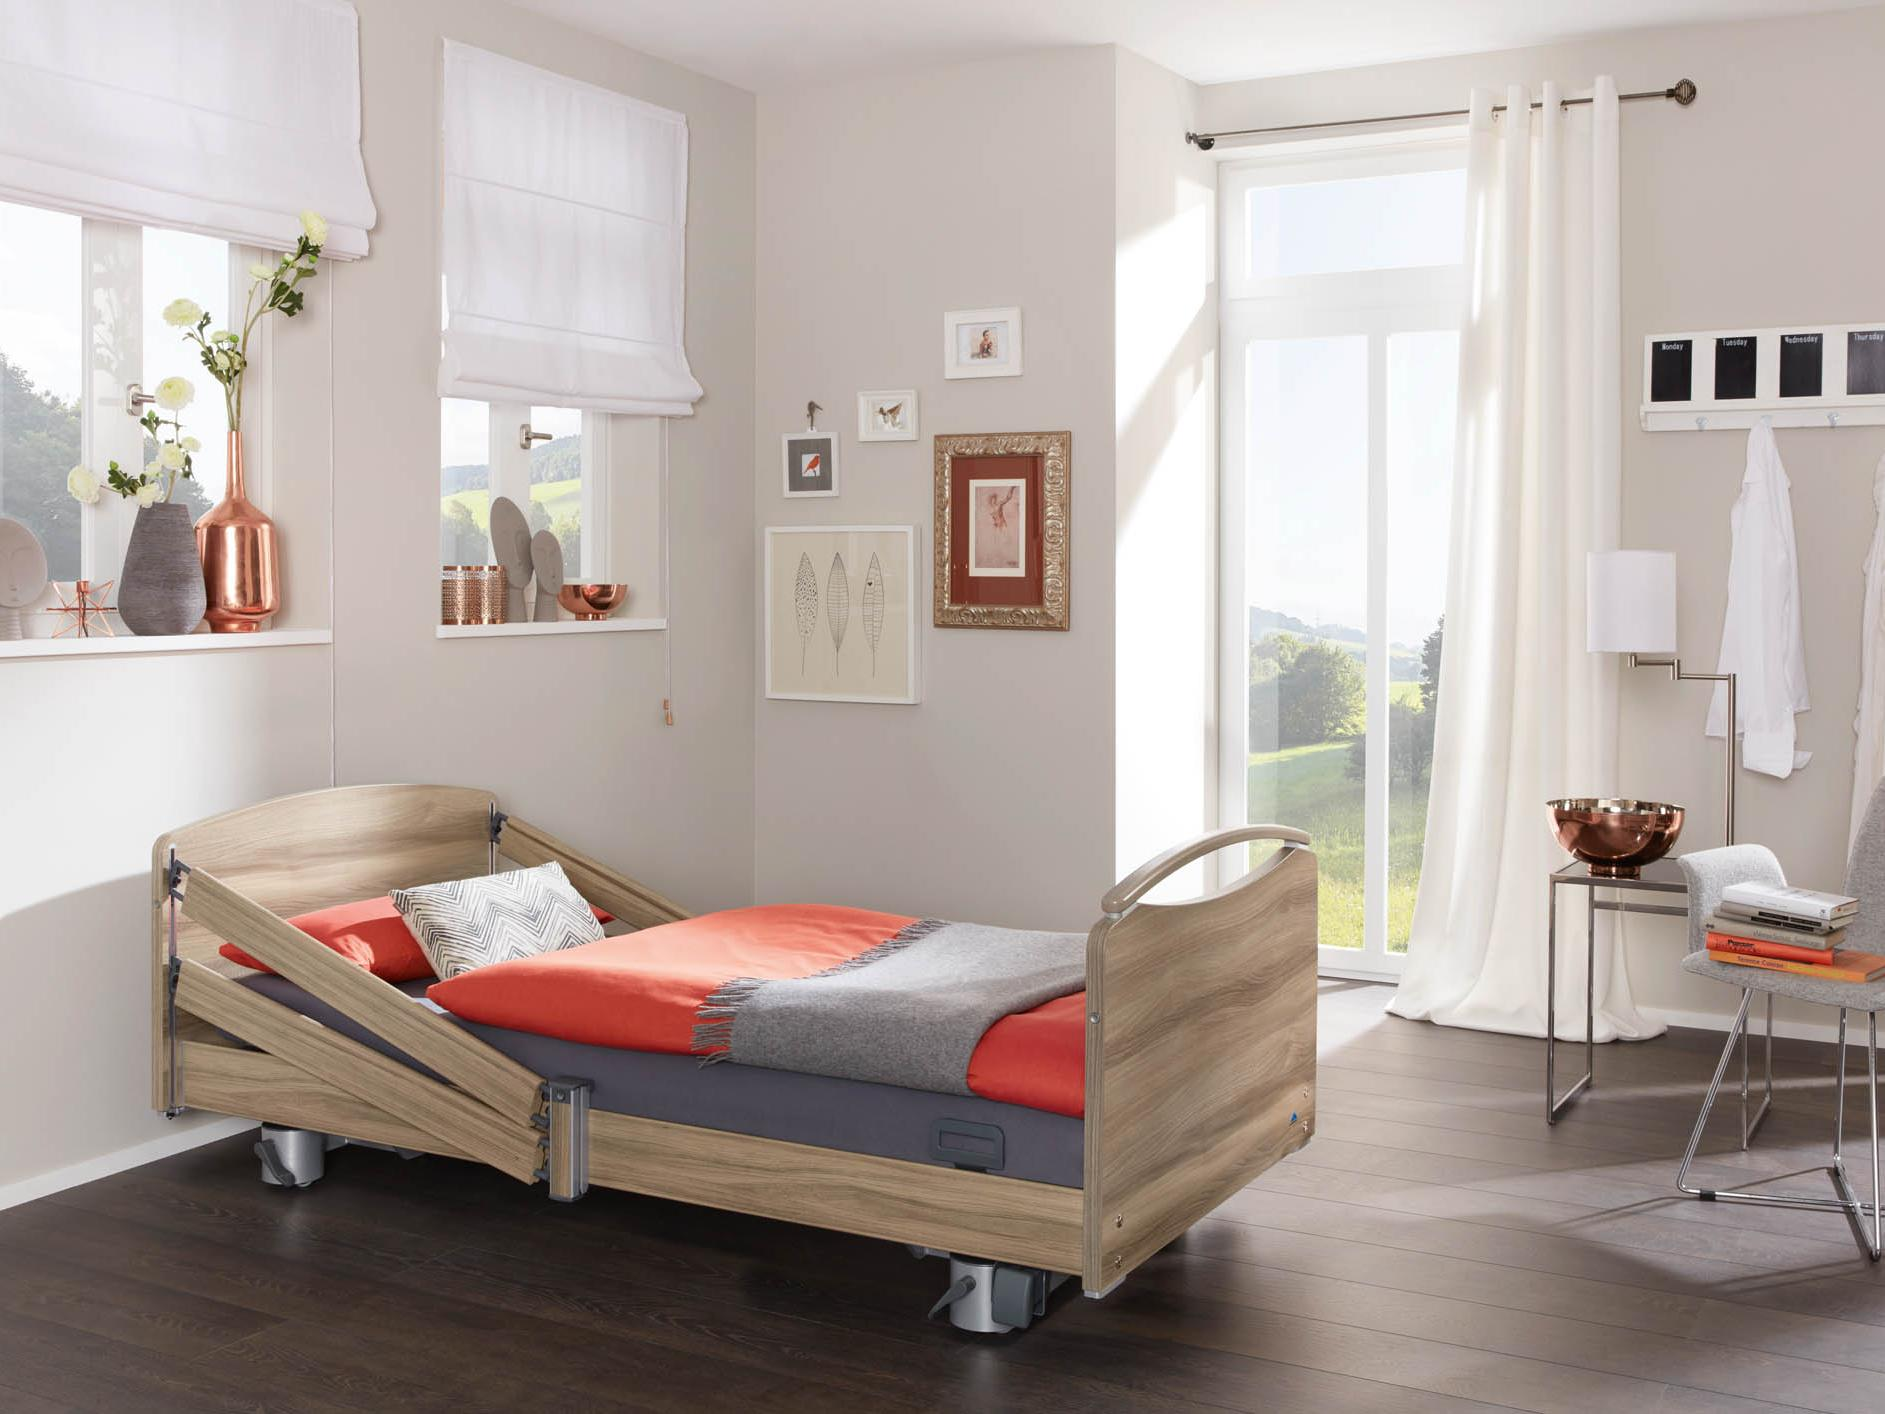 Elvido vervo low-height bed with a split safety side at the head end